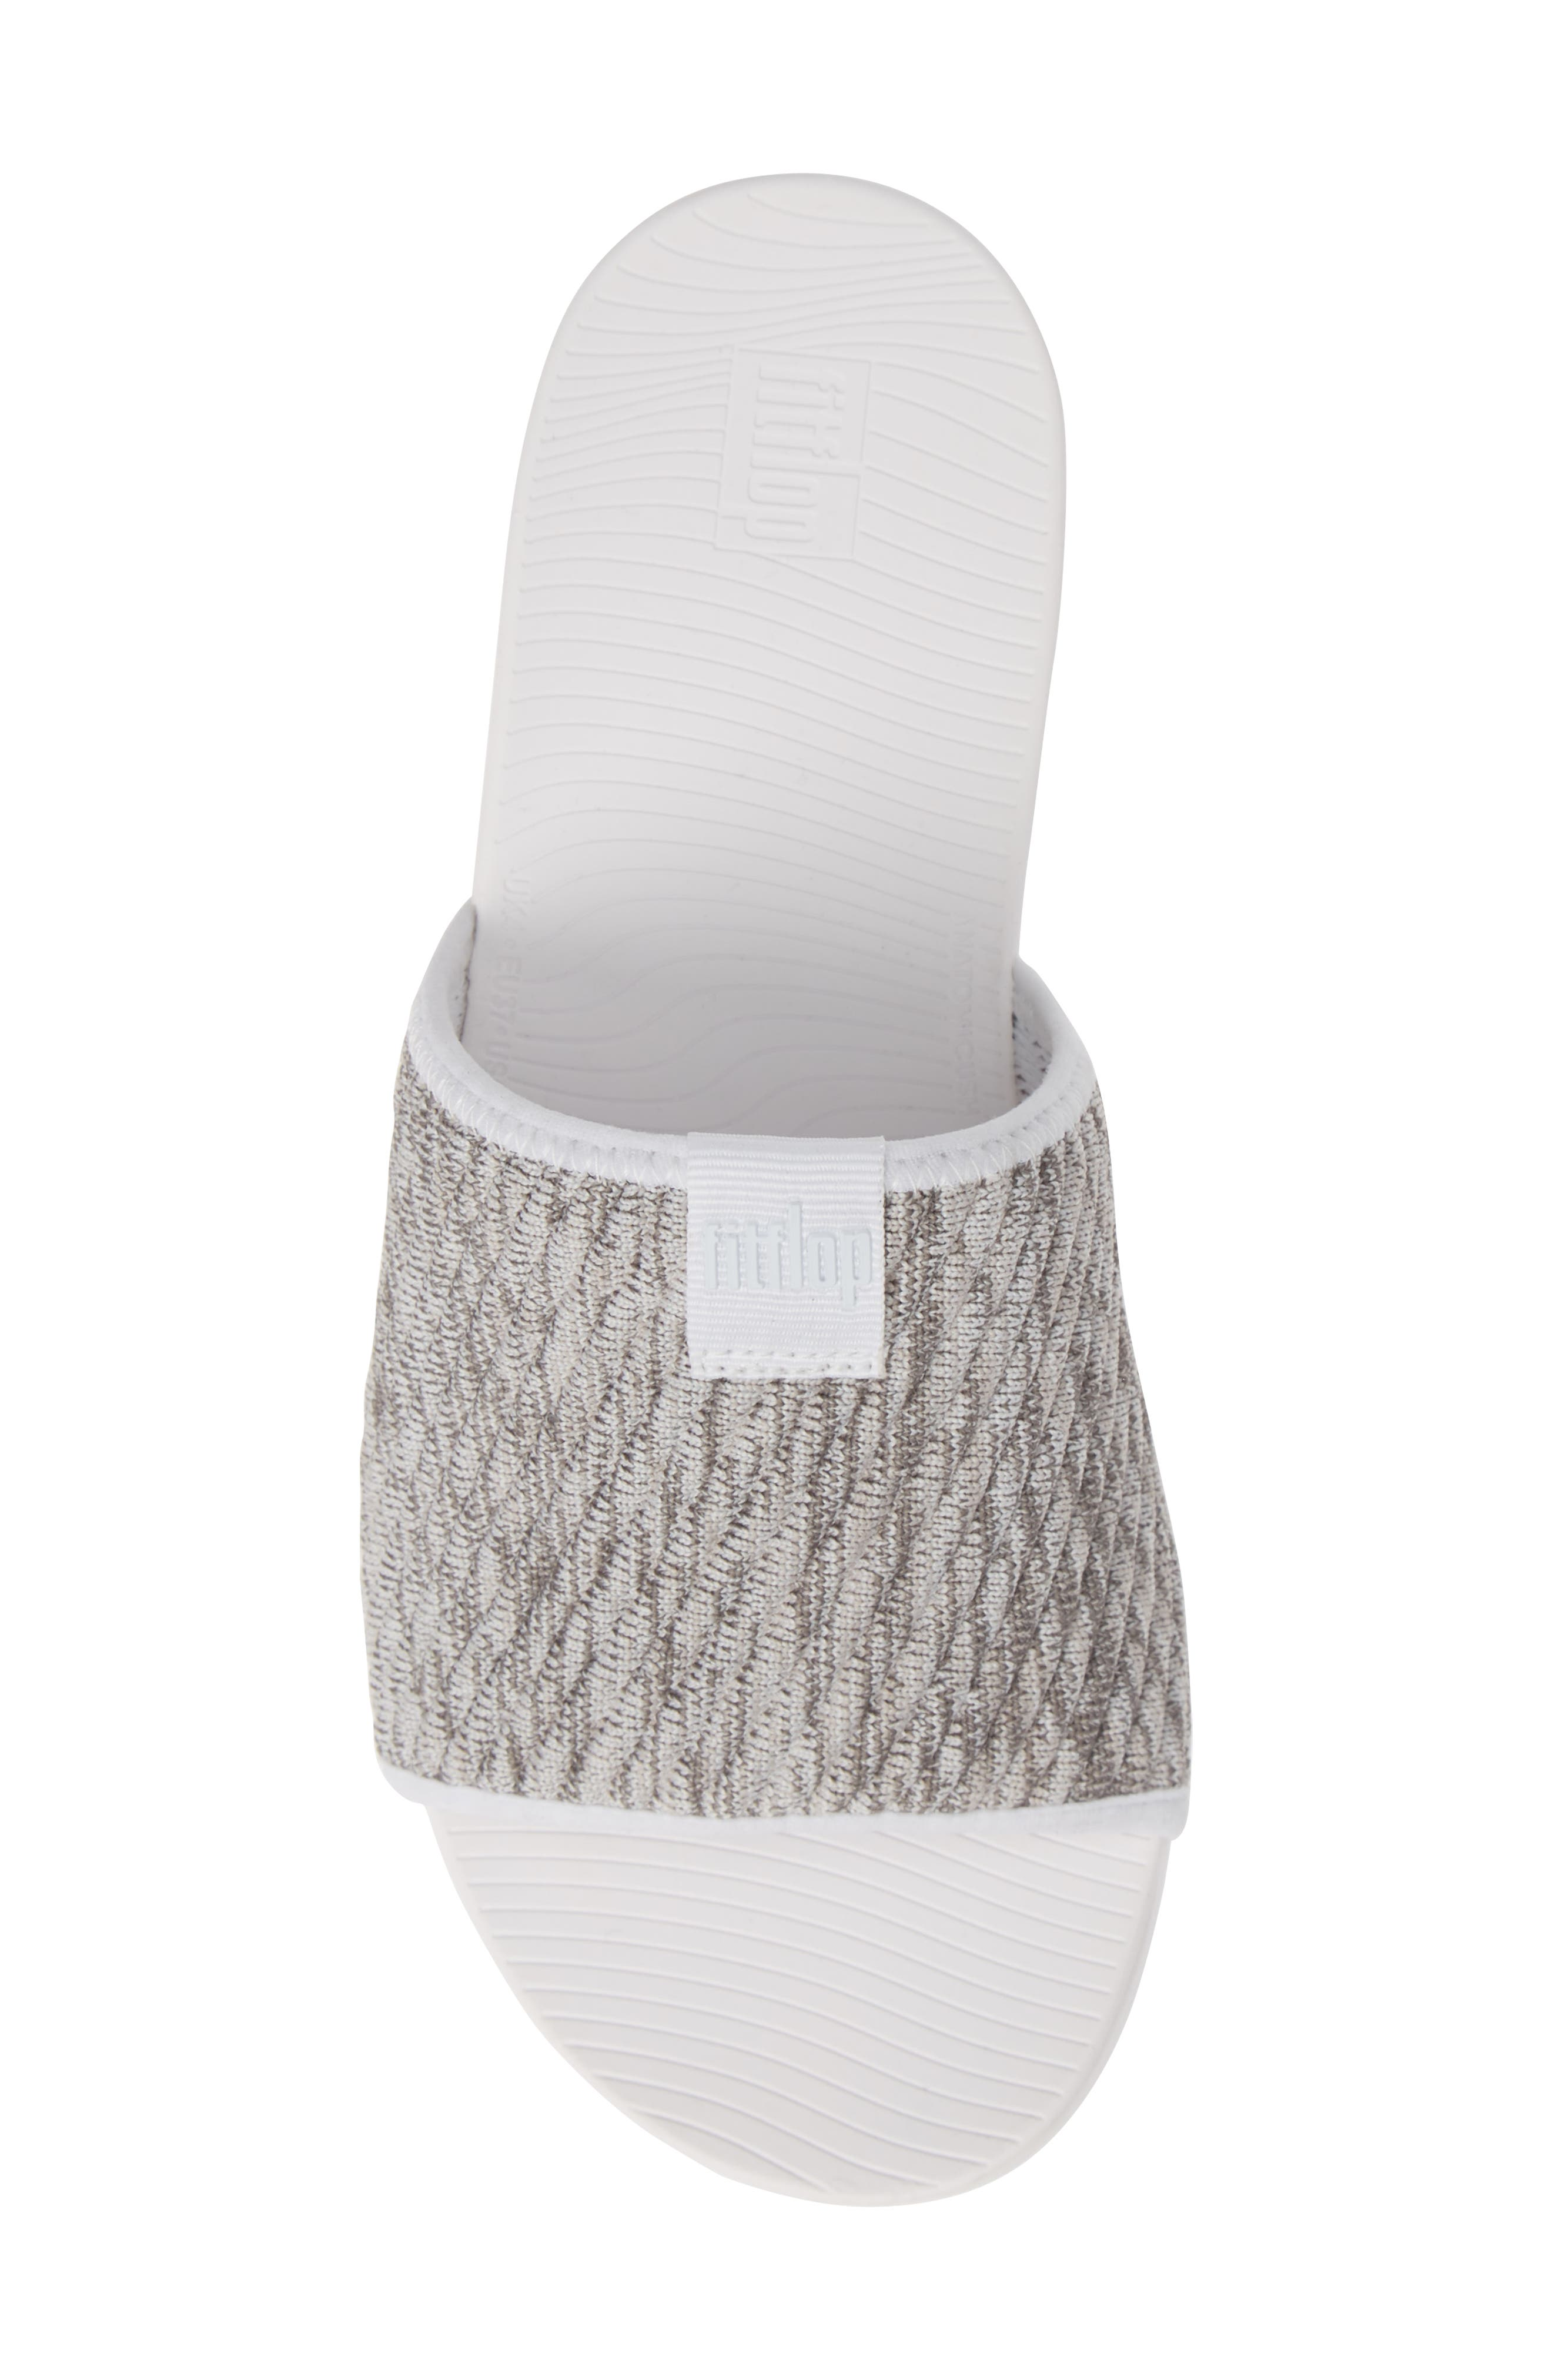 FITFLOP, Artknit Slide Sandal, Alternate thumbnail 5, color, URBAN WHITE MIX FABRIC